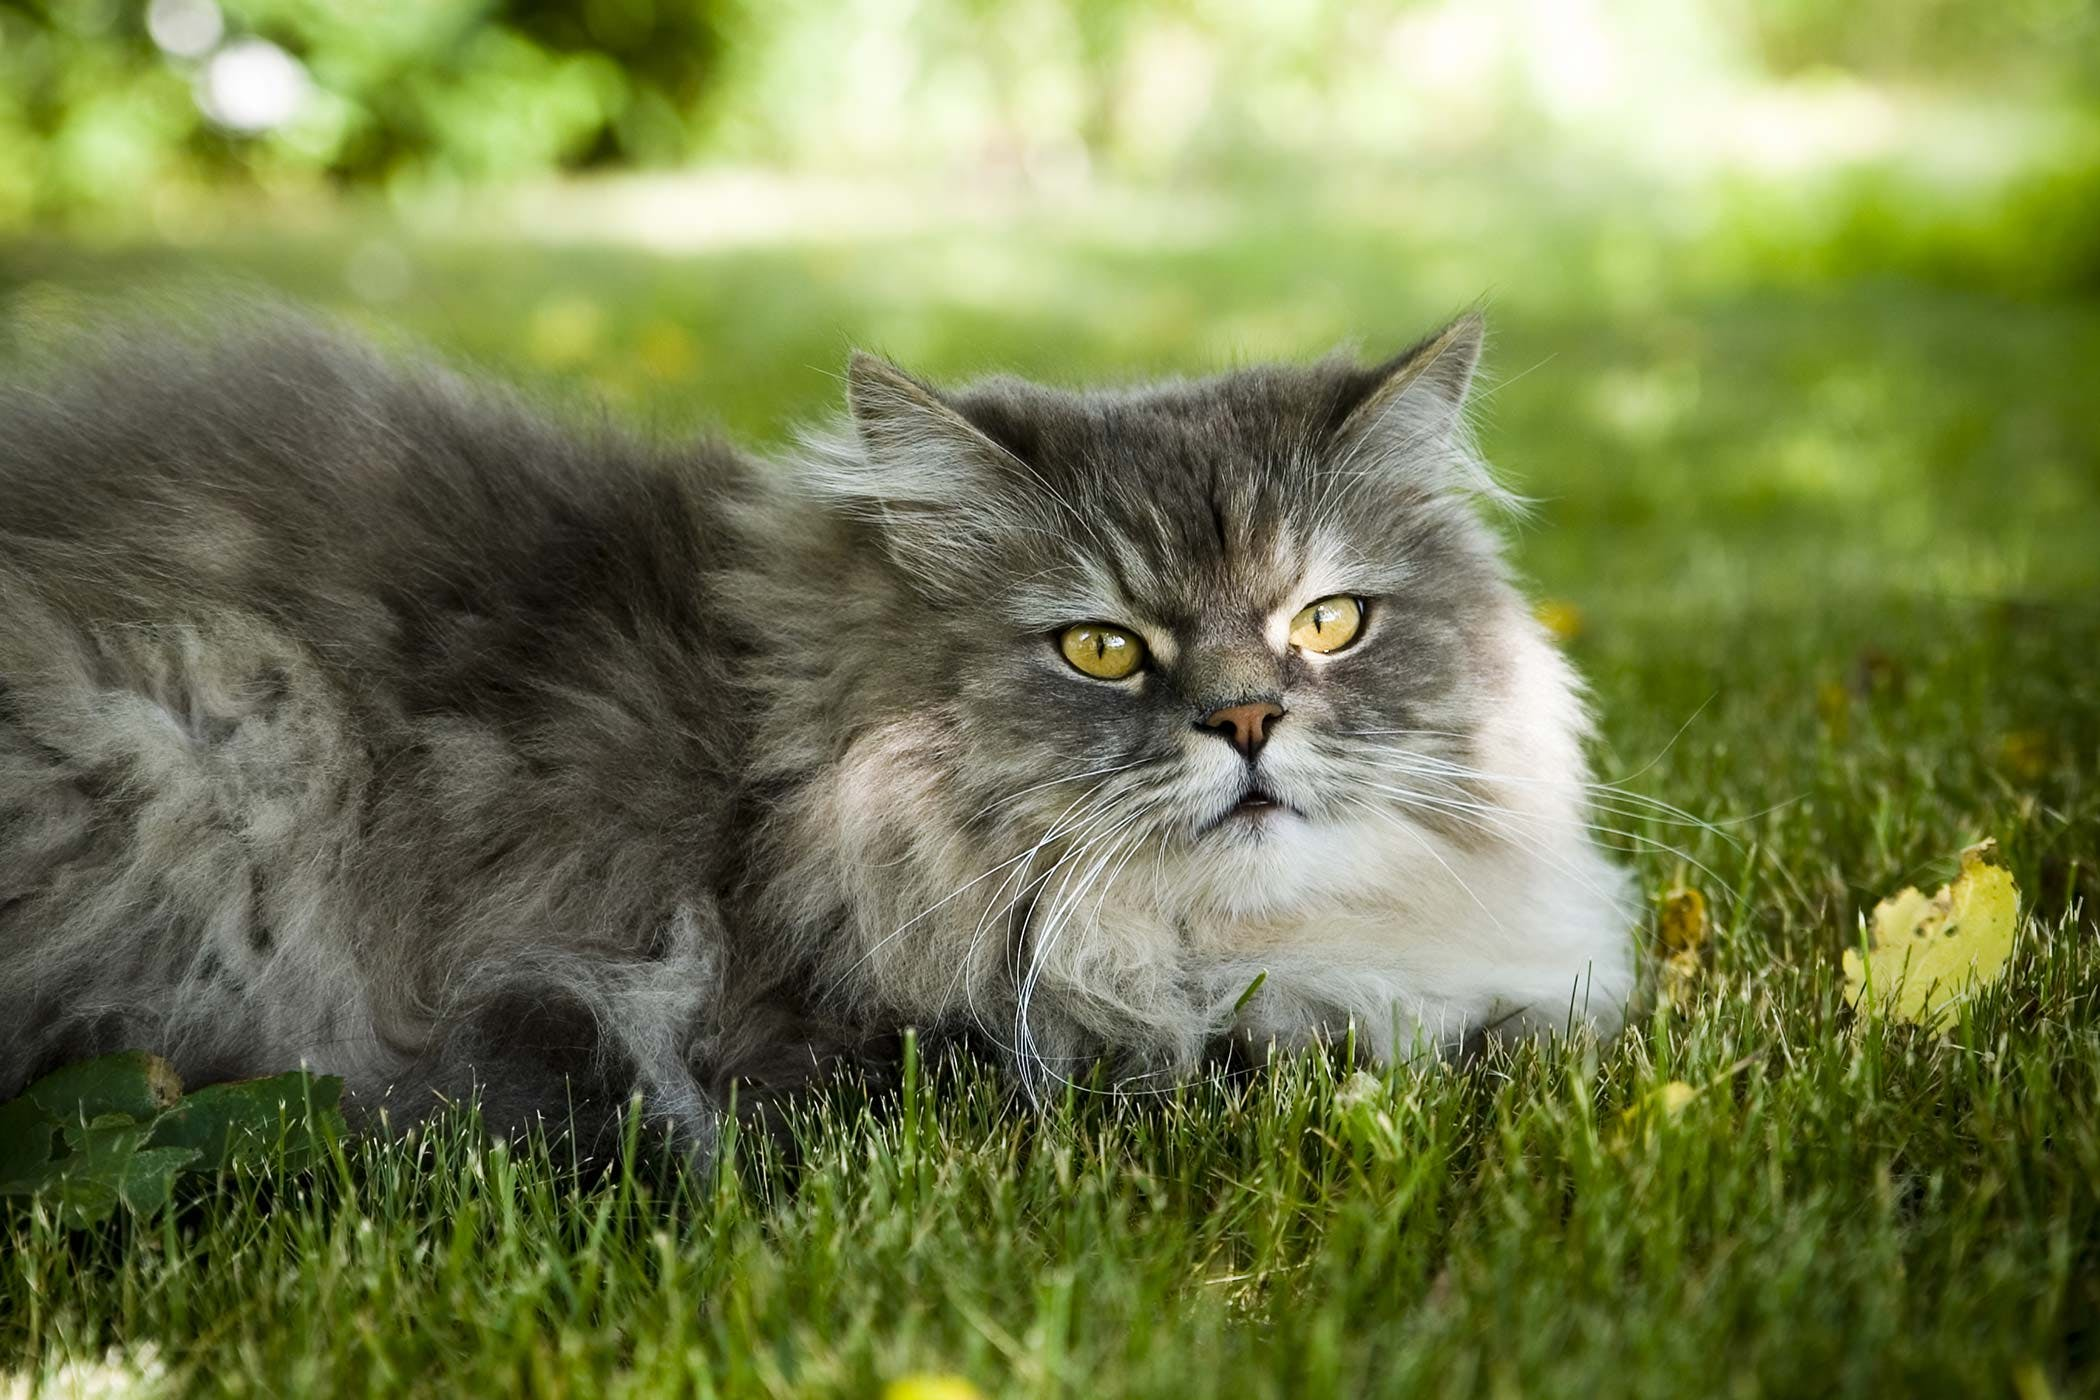 Wart Virus in Cats - Symptoms, Causes, Diagnosis, Treatment